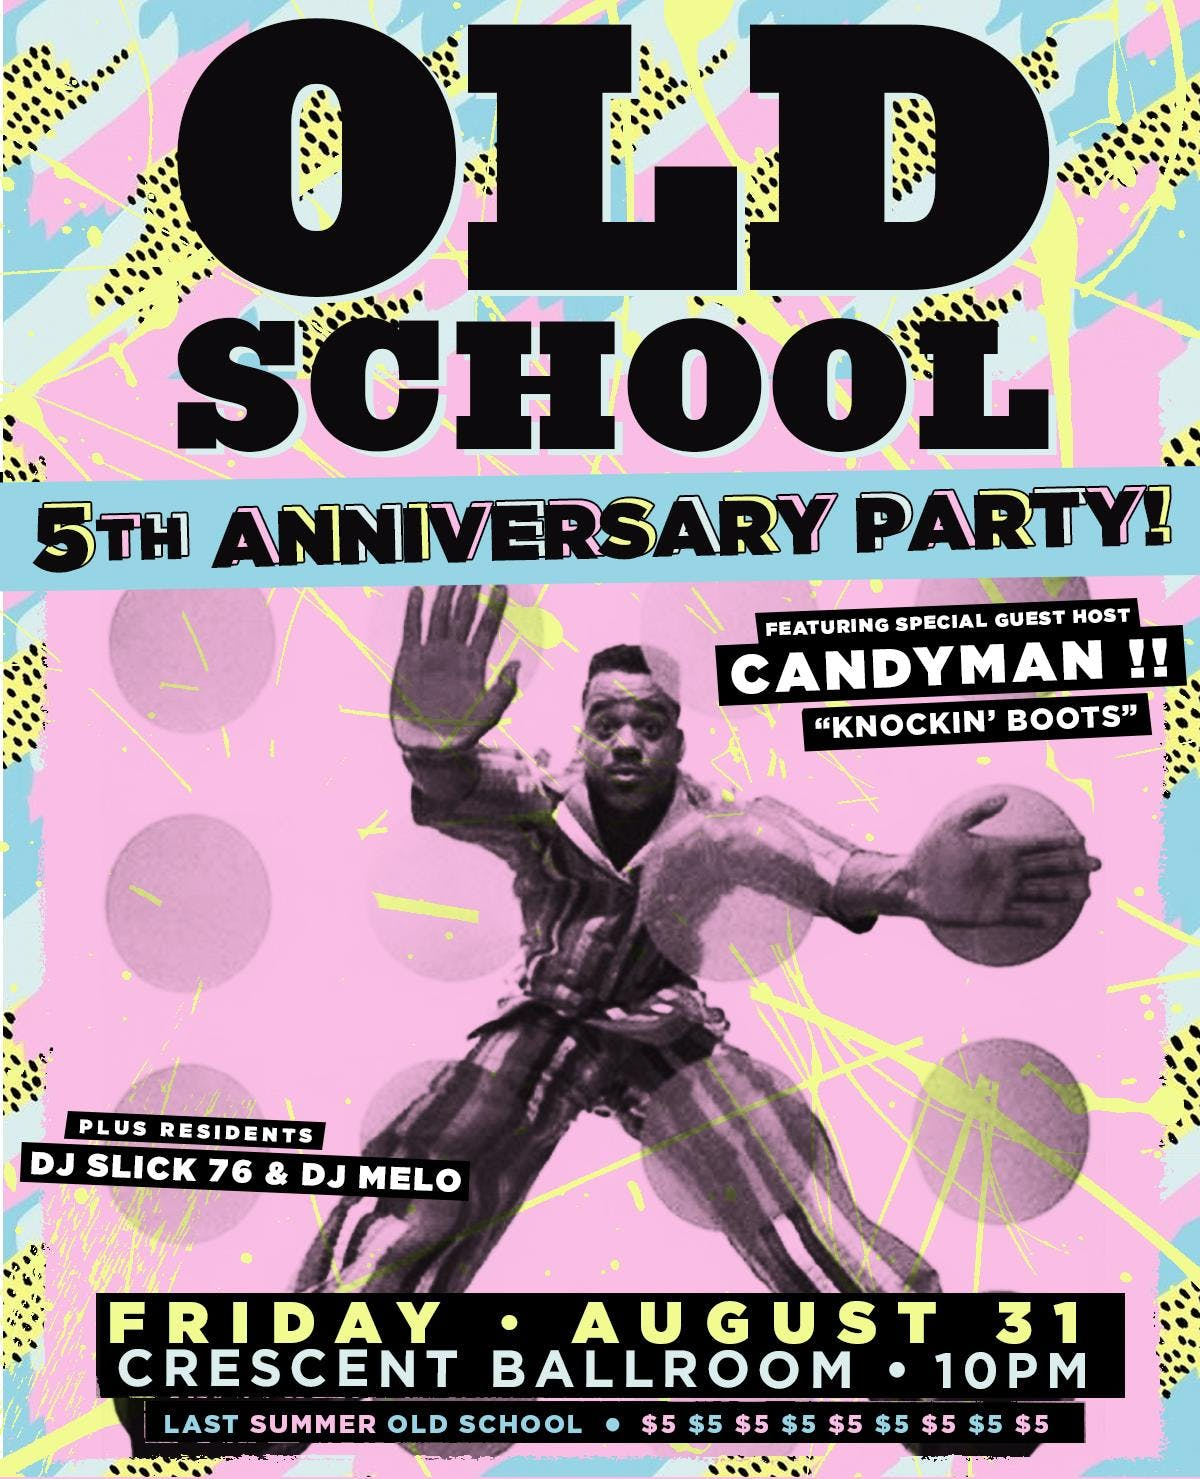 OLD SCHOOL! '90s R&B and Hip Hop Dance Party